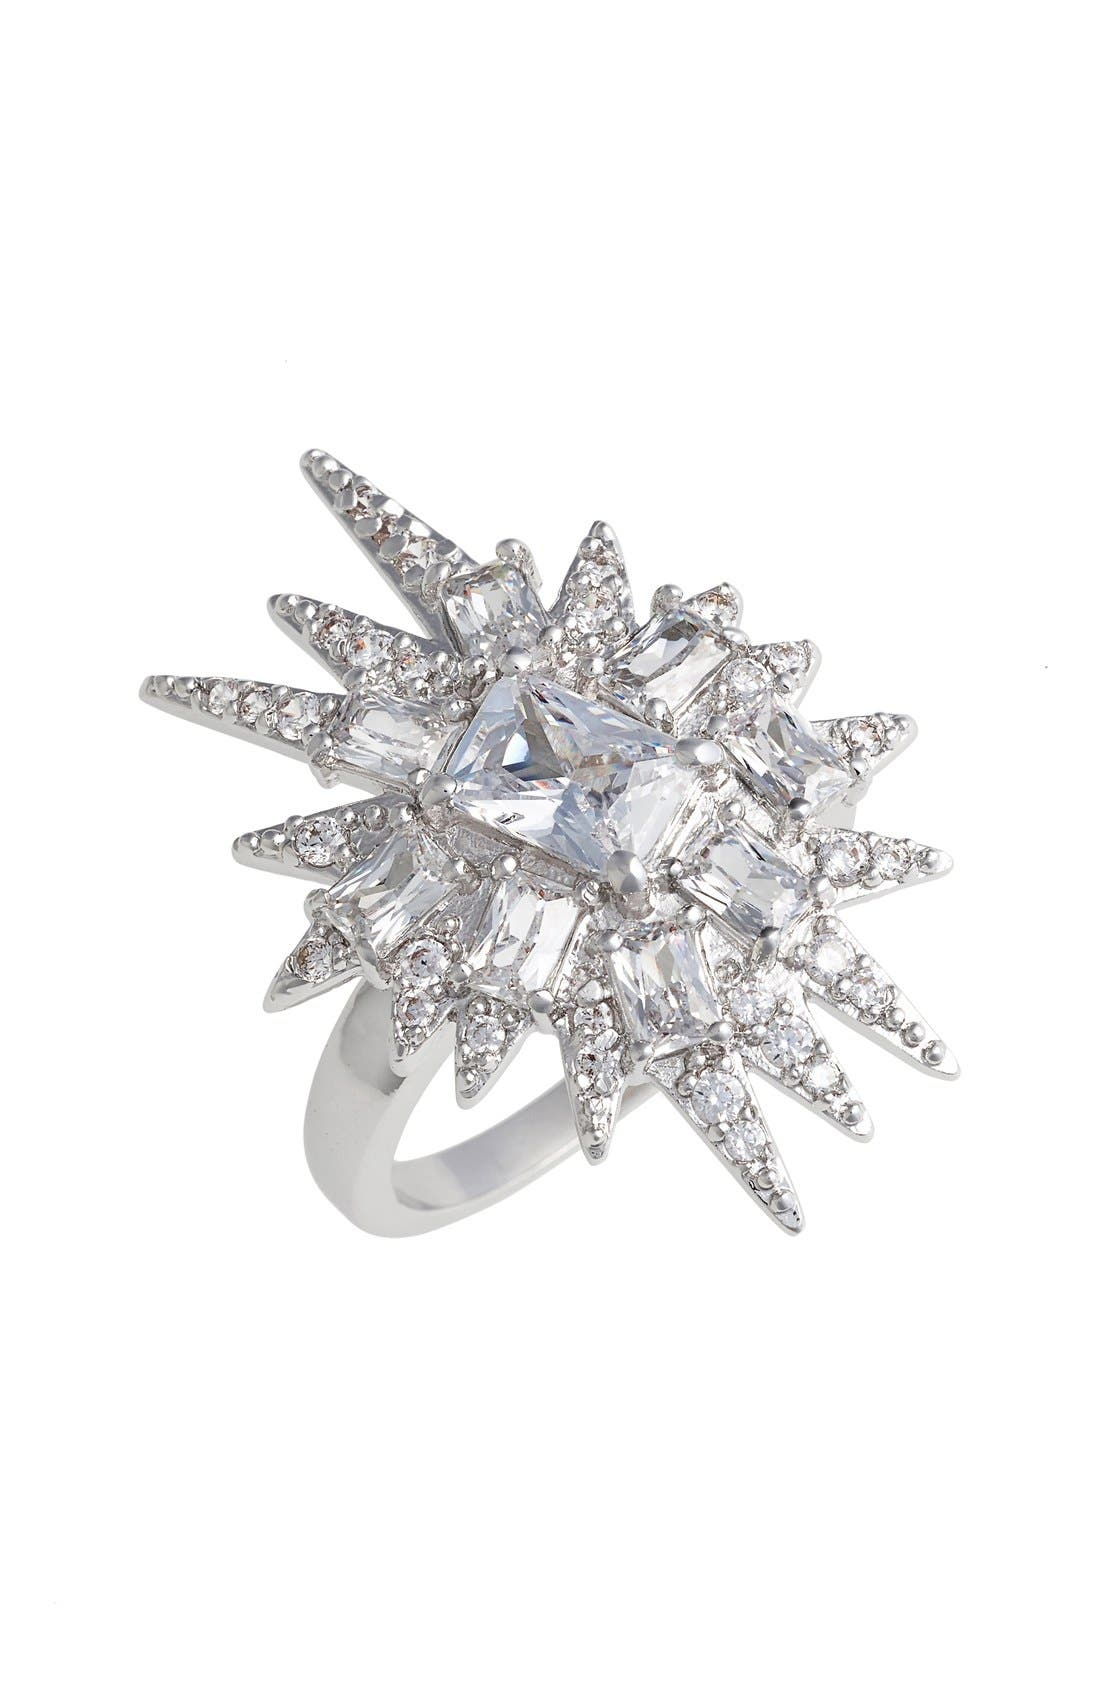 CZ by Kenneth Jay Lane 'Explosion' Cubic Zirconia Cocktail Ring